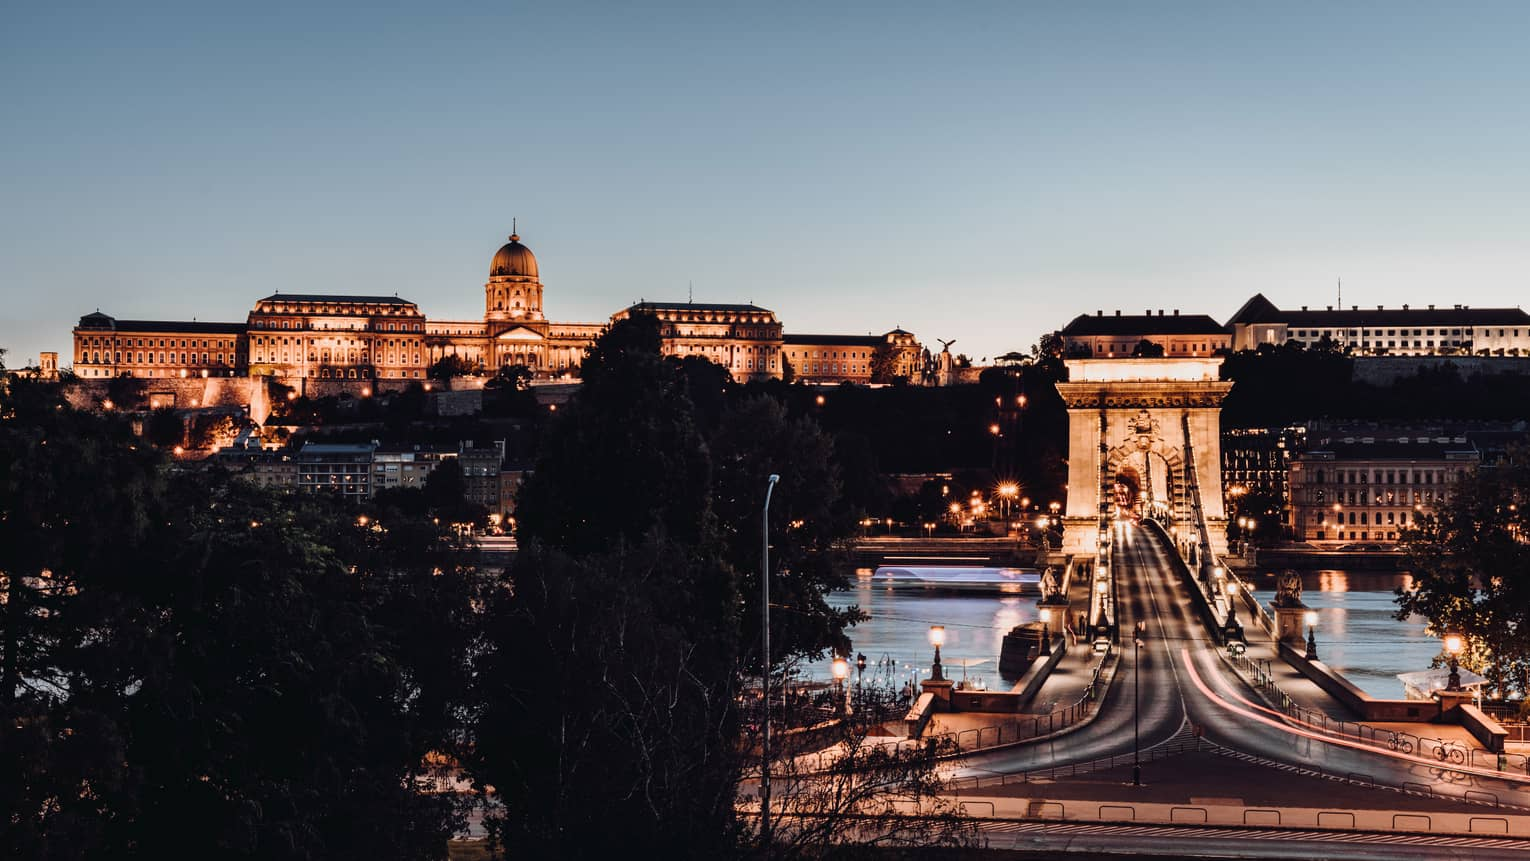 Széchenyi Chain Bridge over the Danube River, uplit Buda Castle at night